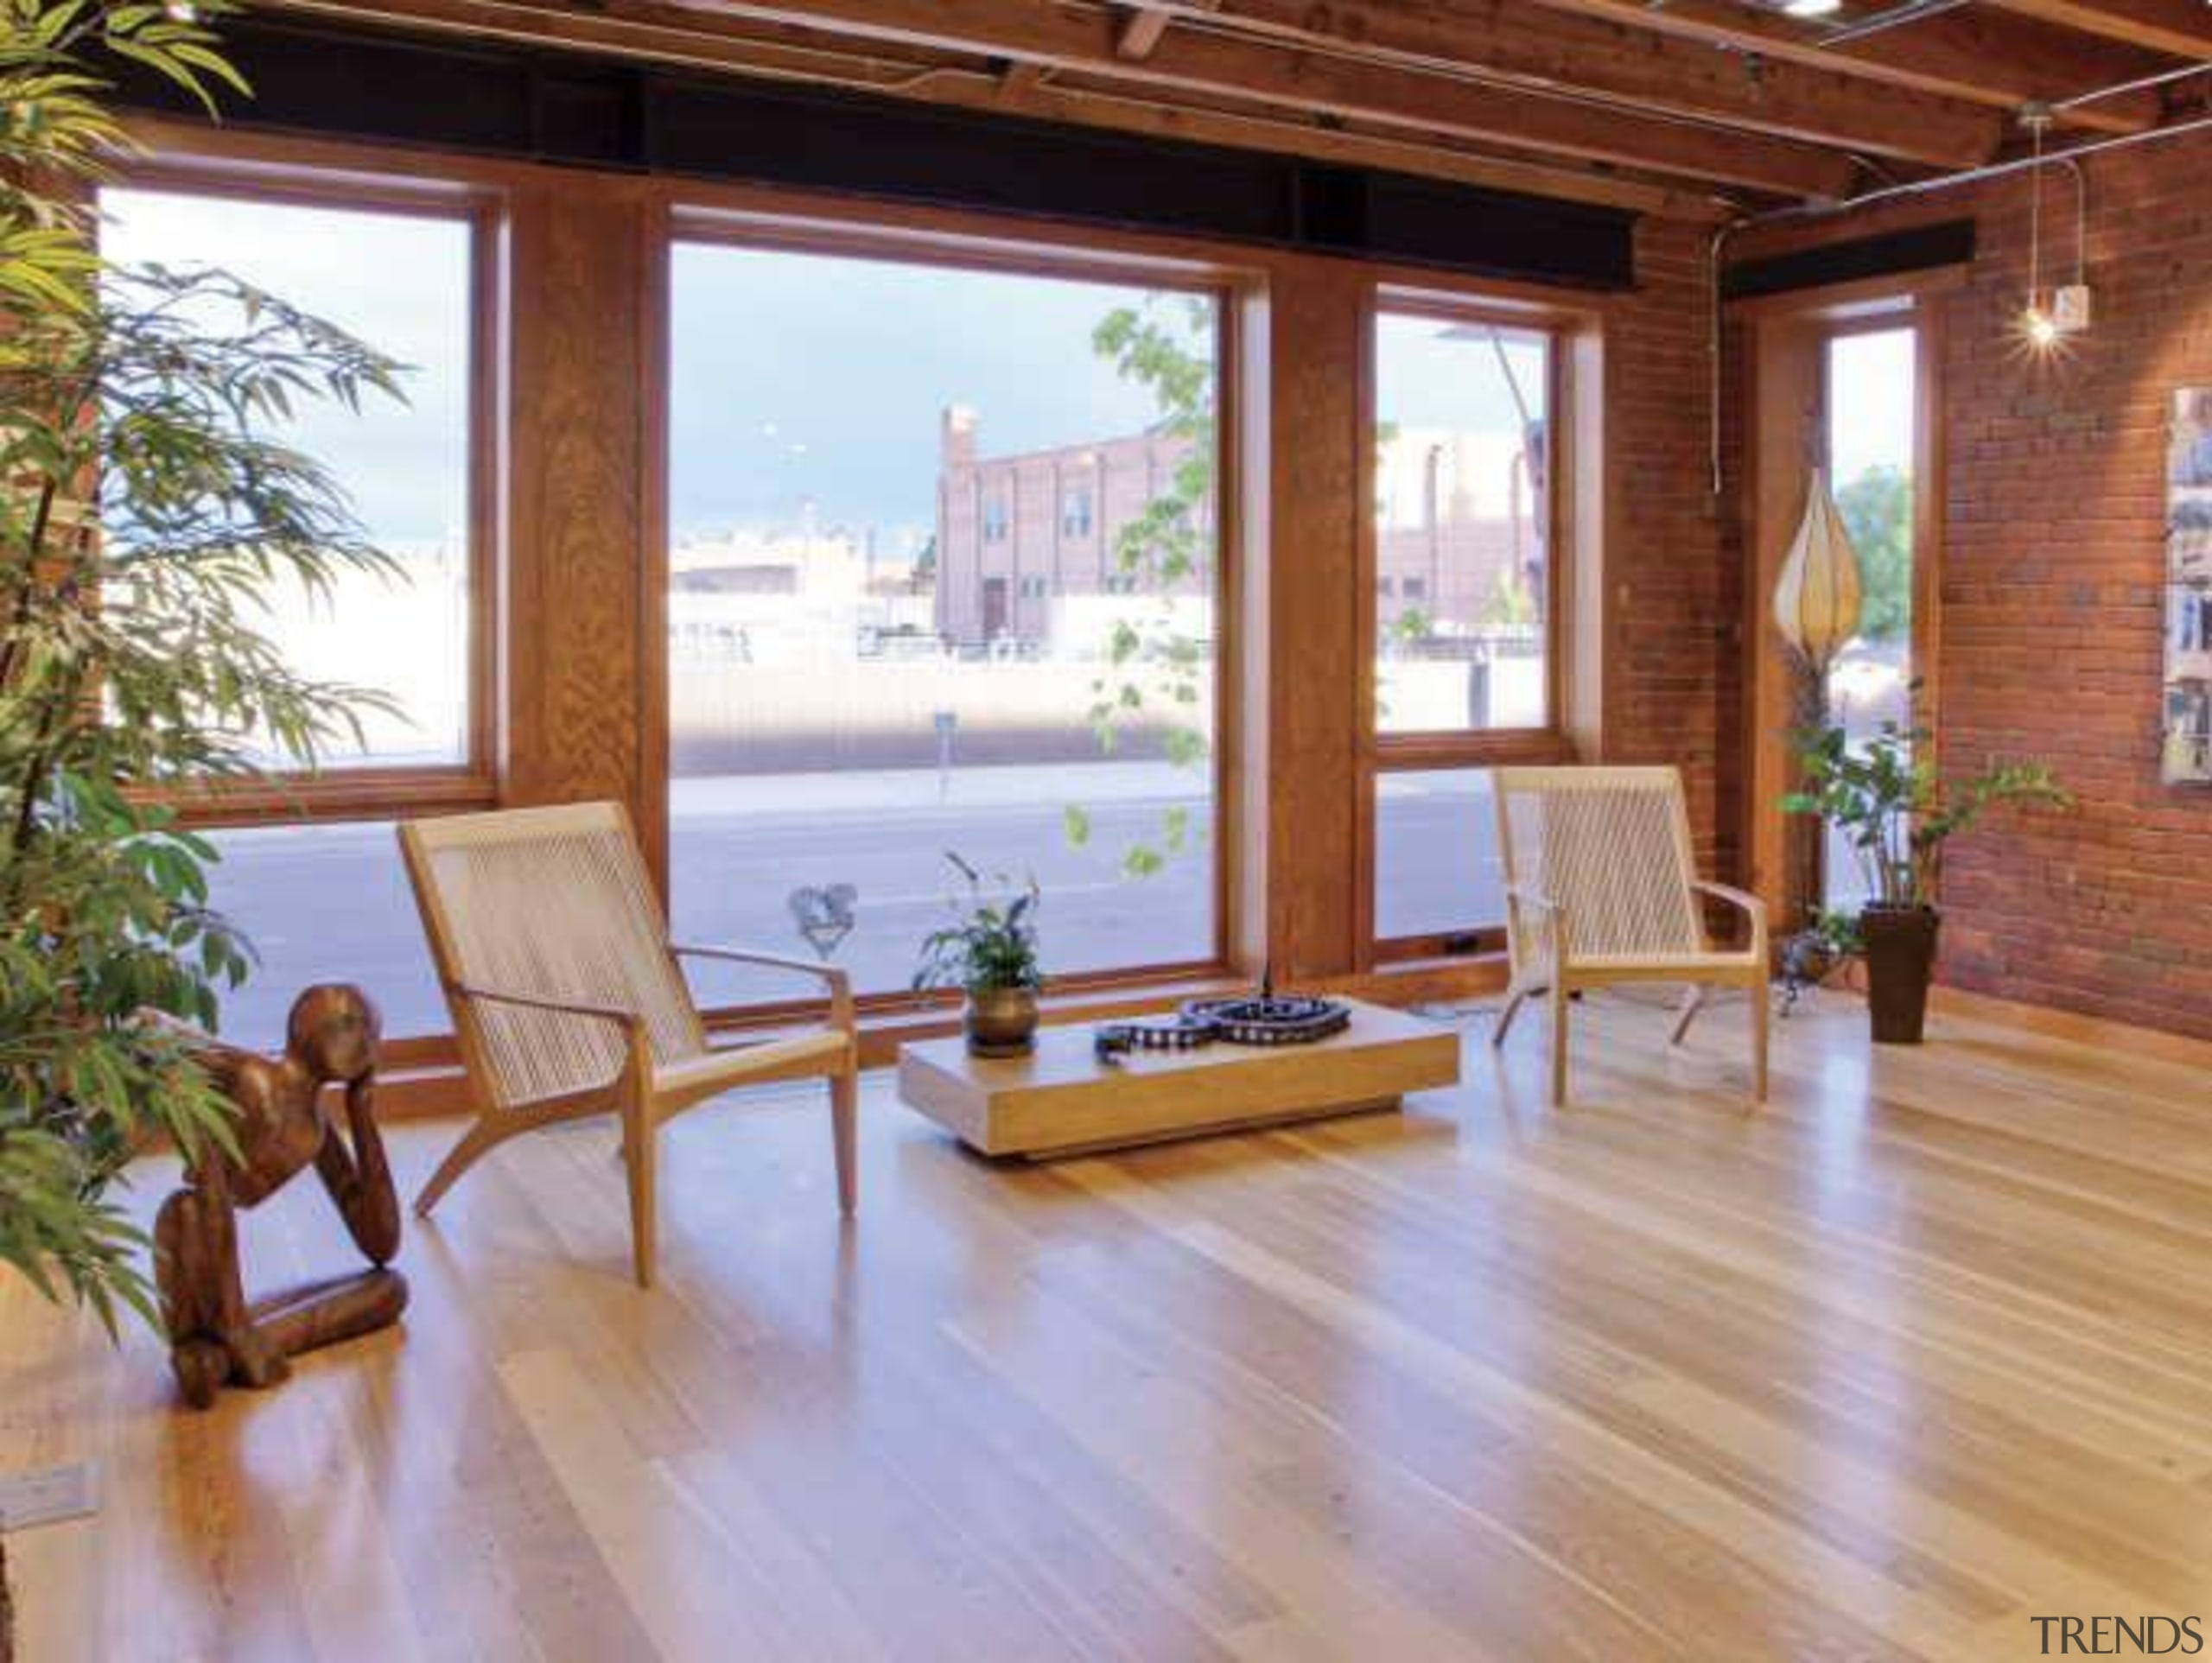 Warmboard provides and eco friendly, quiet and efficient deck, estate, floor, flooring, hardwood, home, house, interior design, laminate flooring, living room, property, real estate, window, wood, wood flooring, wood stain, brown